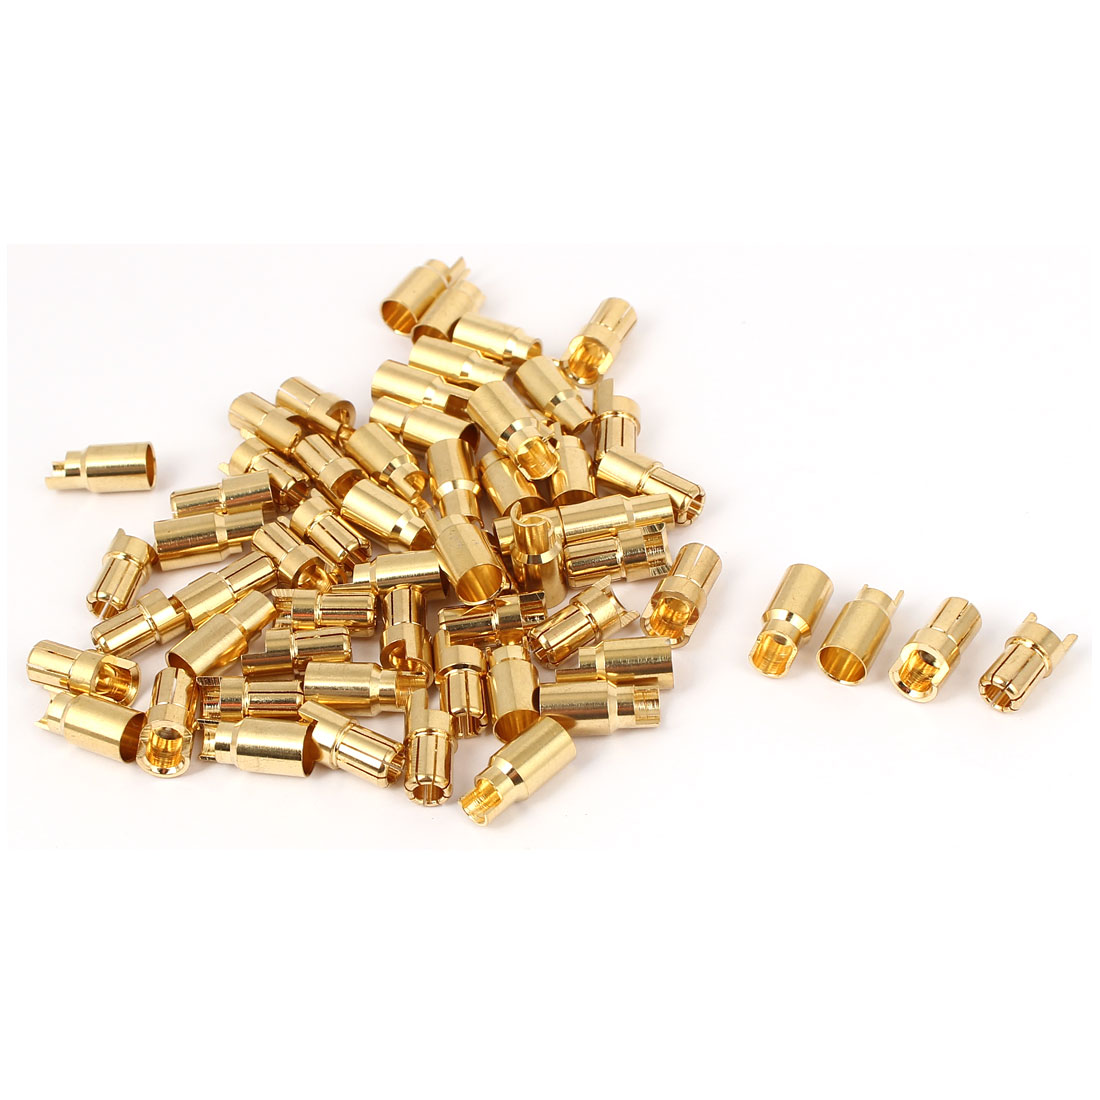 30 Pairs 6mm Gold Tone Metal Hemihedral Banana Female Male Connector for RC Helicopter